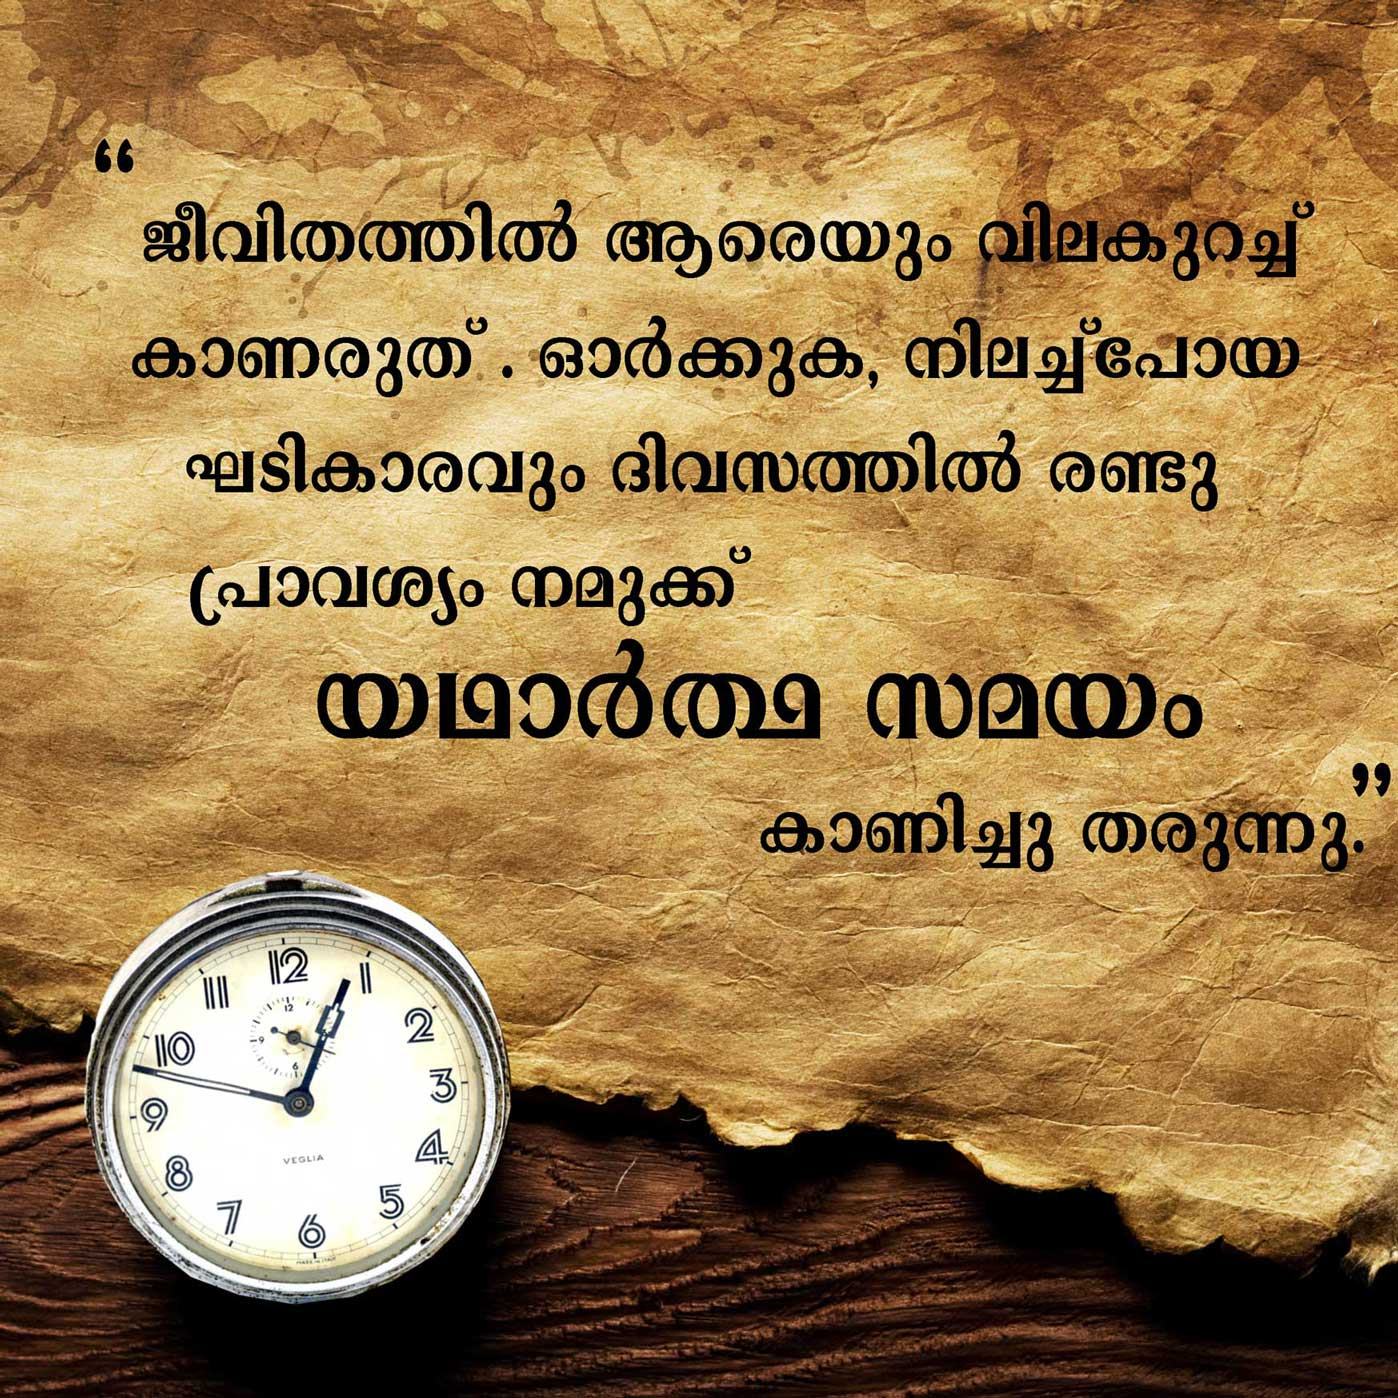 Malayalam Messages: Malayalam Quotes Collection